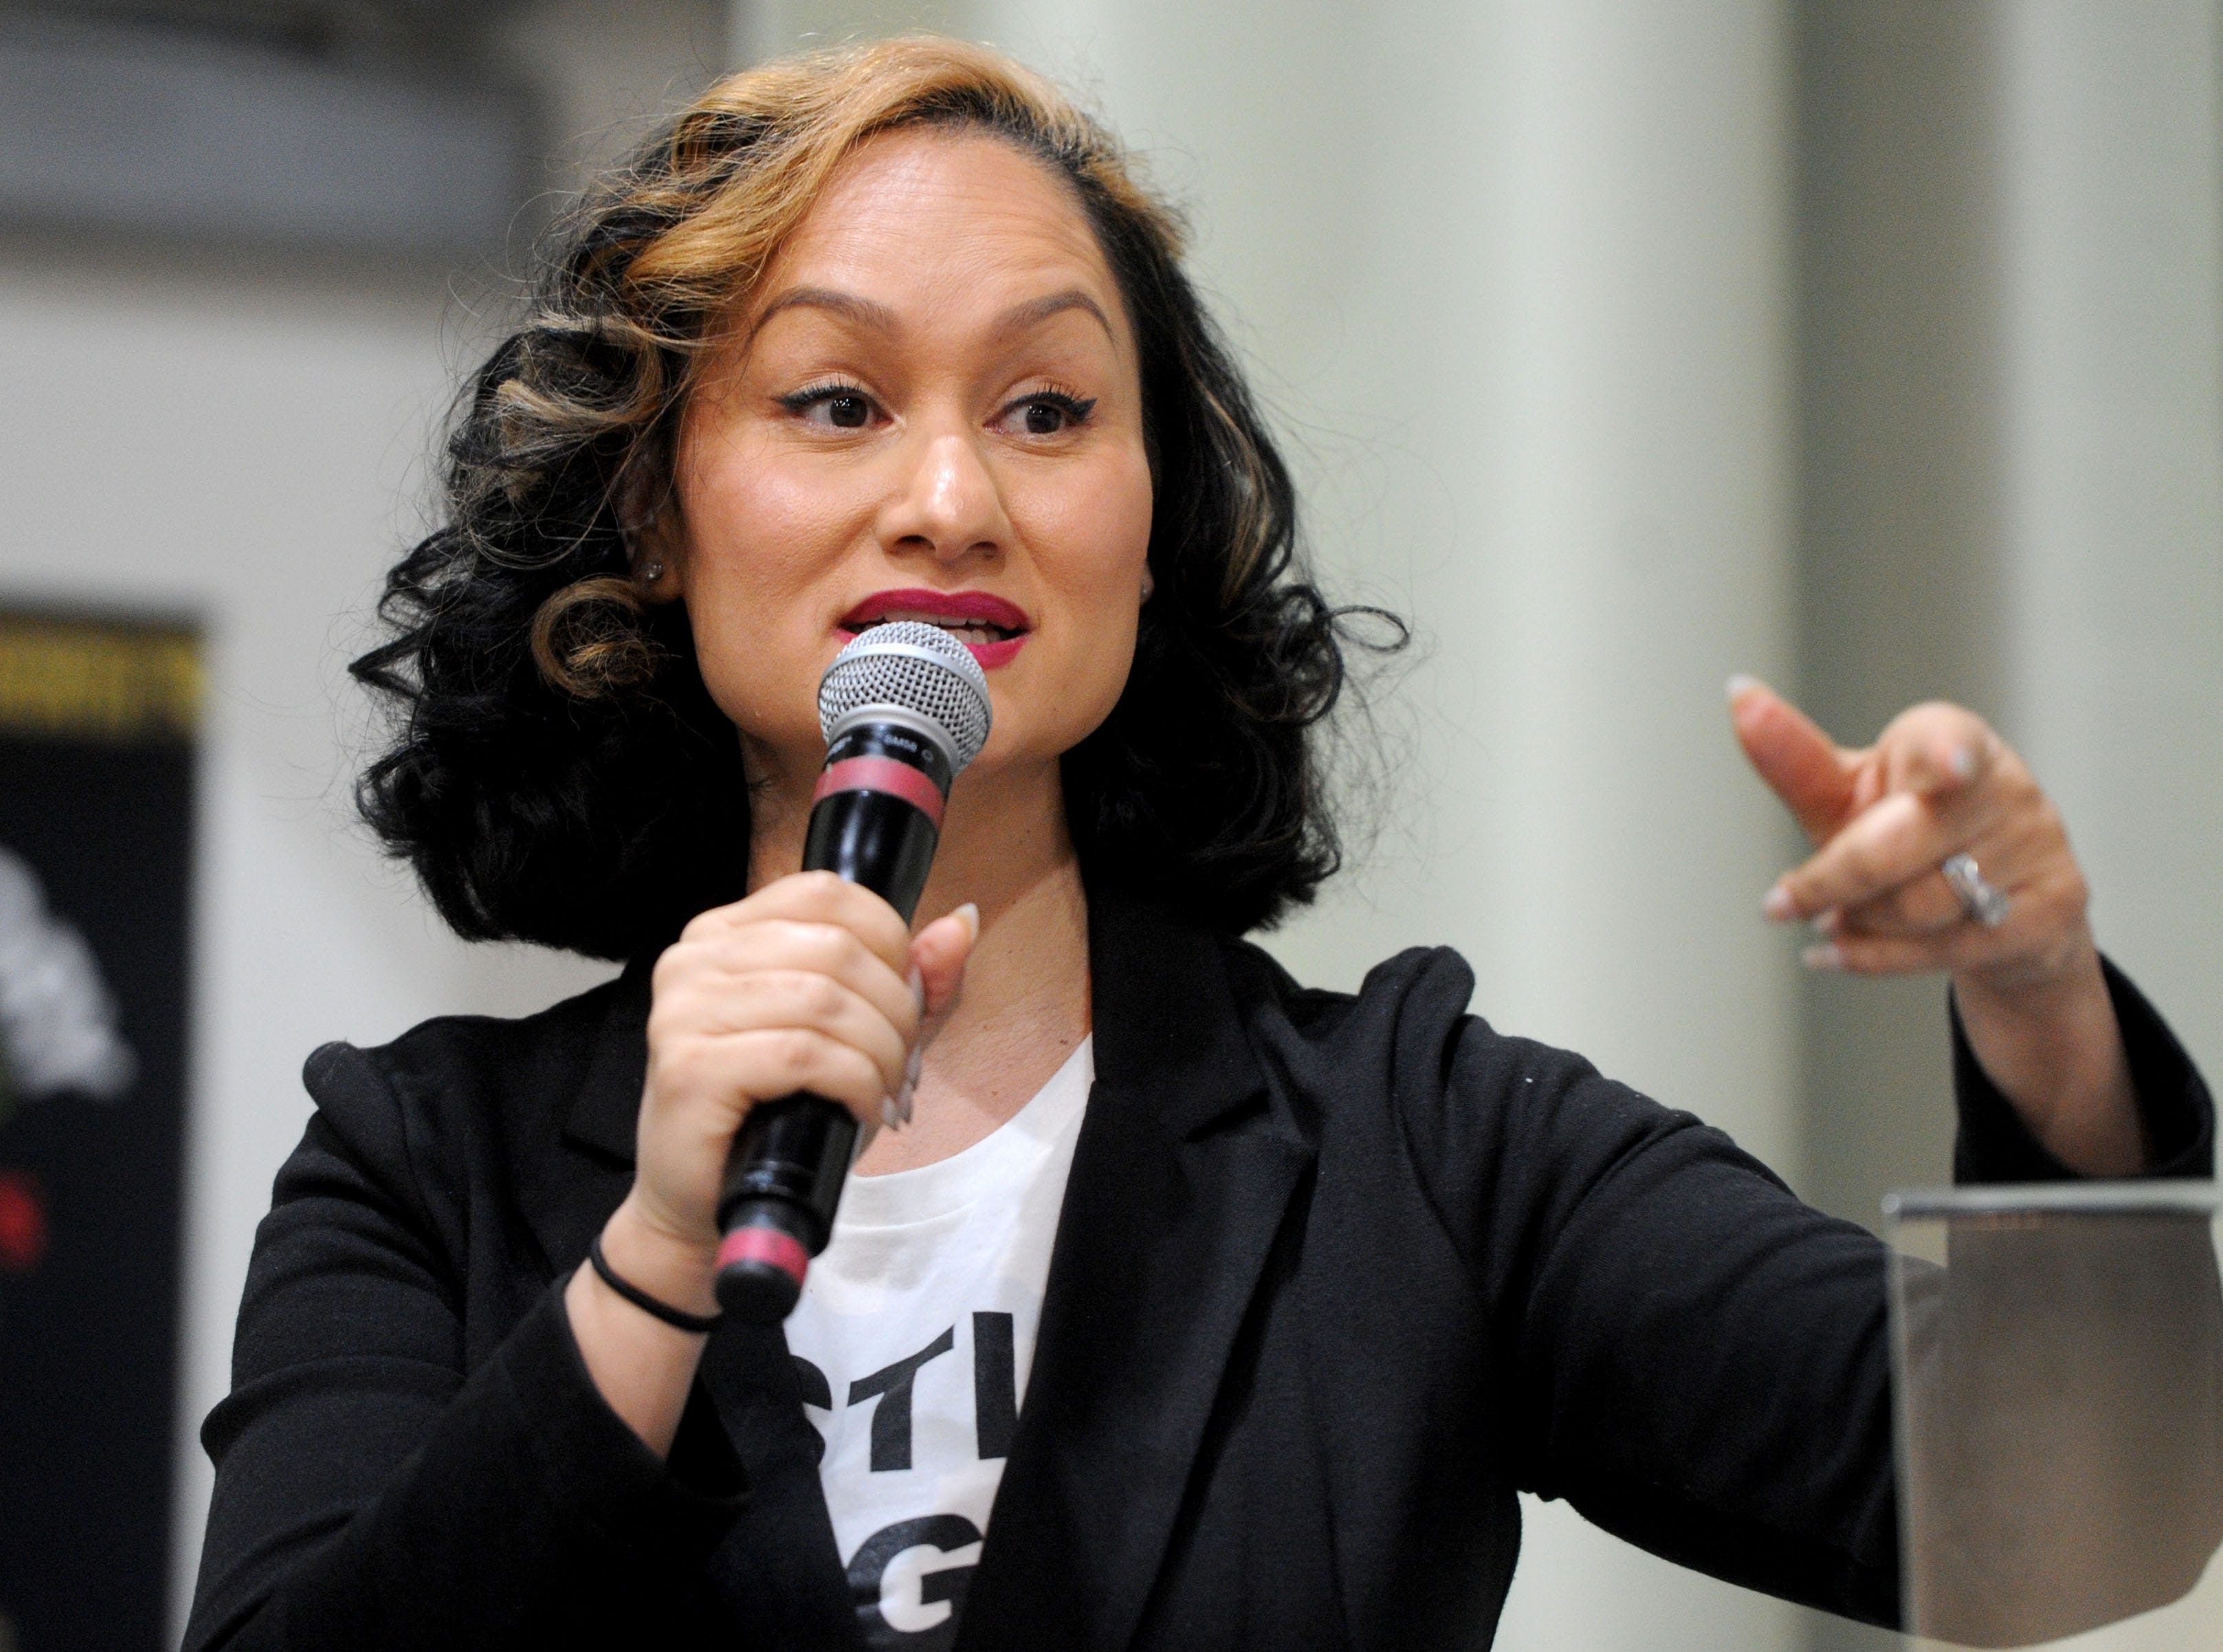 Carmen Perez, nationally known activist and Oxnard native, speaks at a Black History Month event Wednesday at Oxnard College. Perez is best known as being one of the co-chairs of the national Women's March movement.